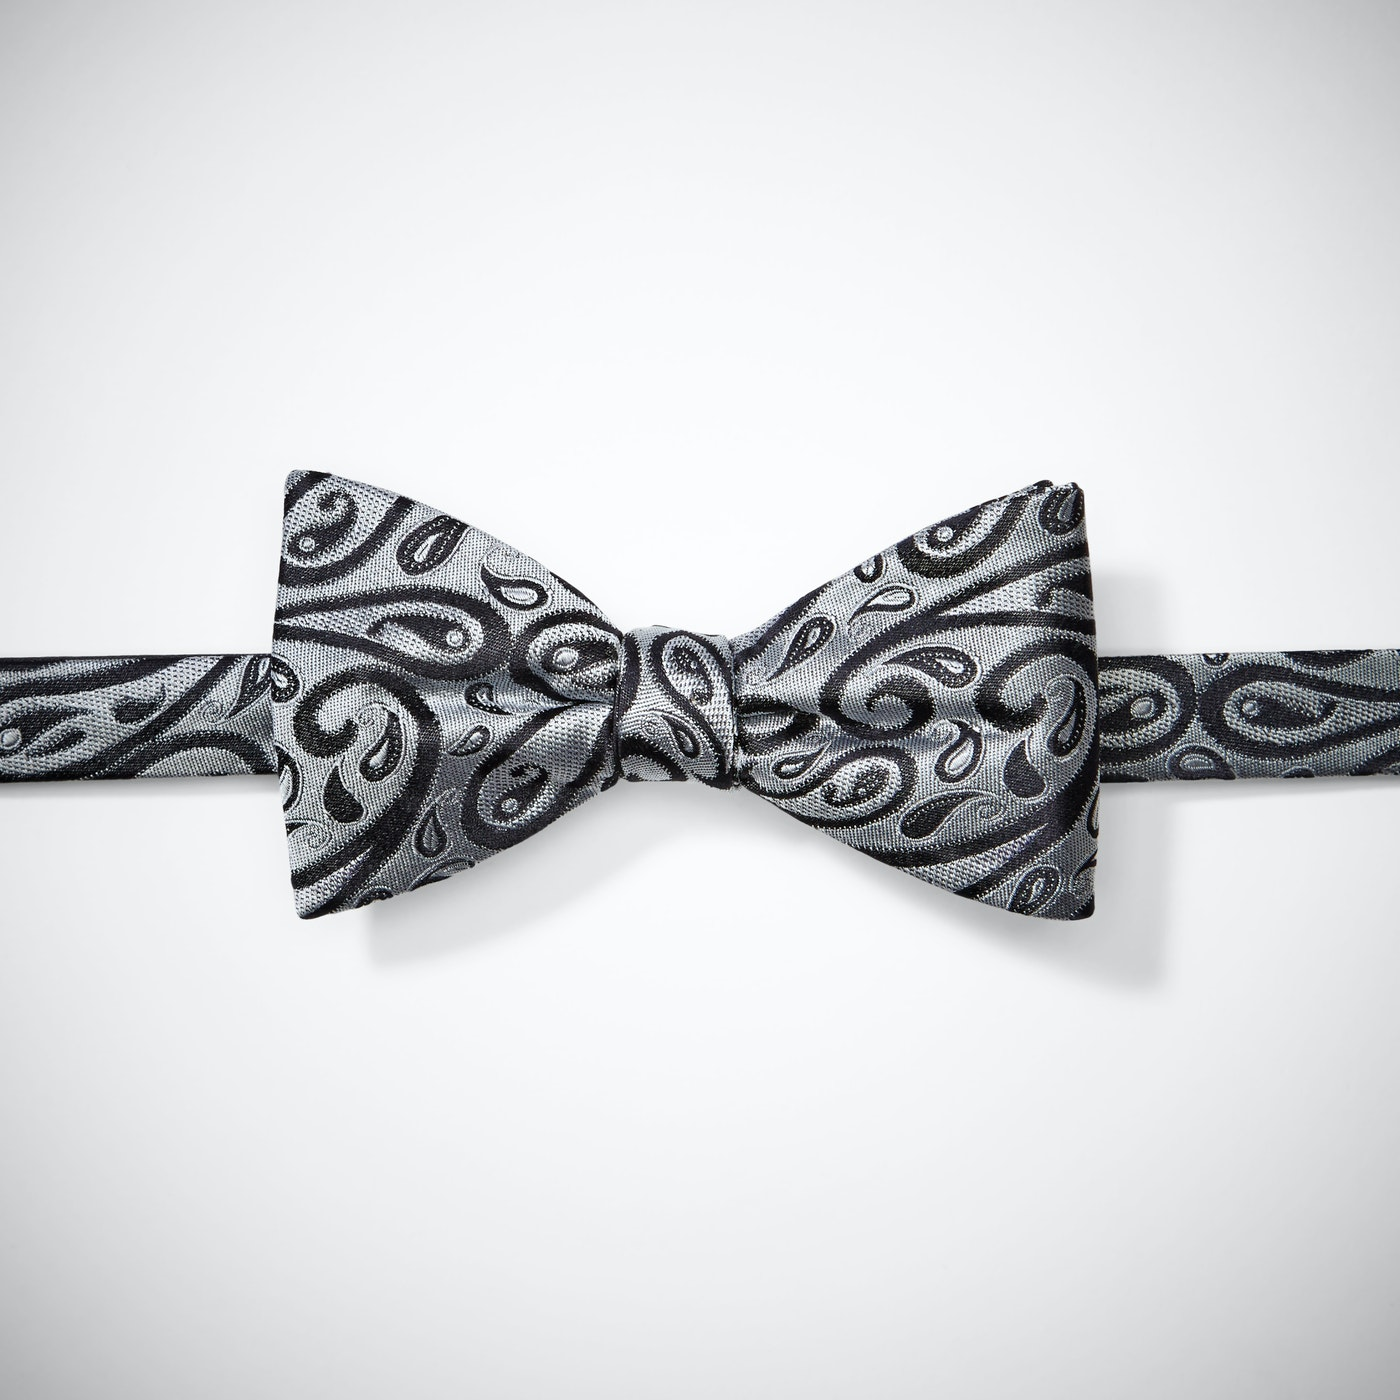 Silver with Black Paisley Bow Tie